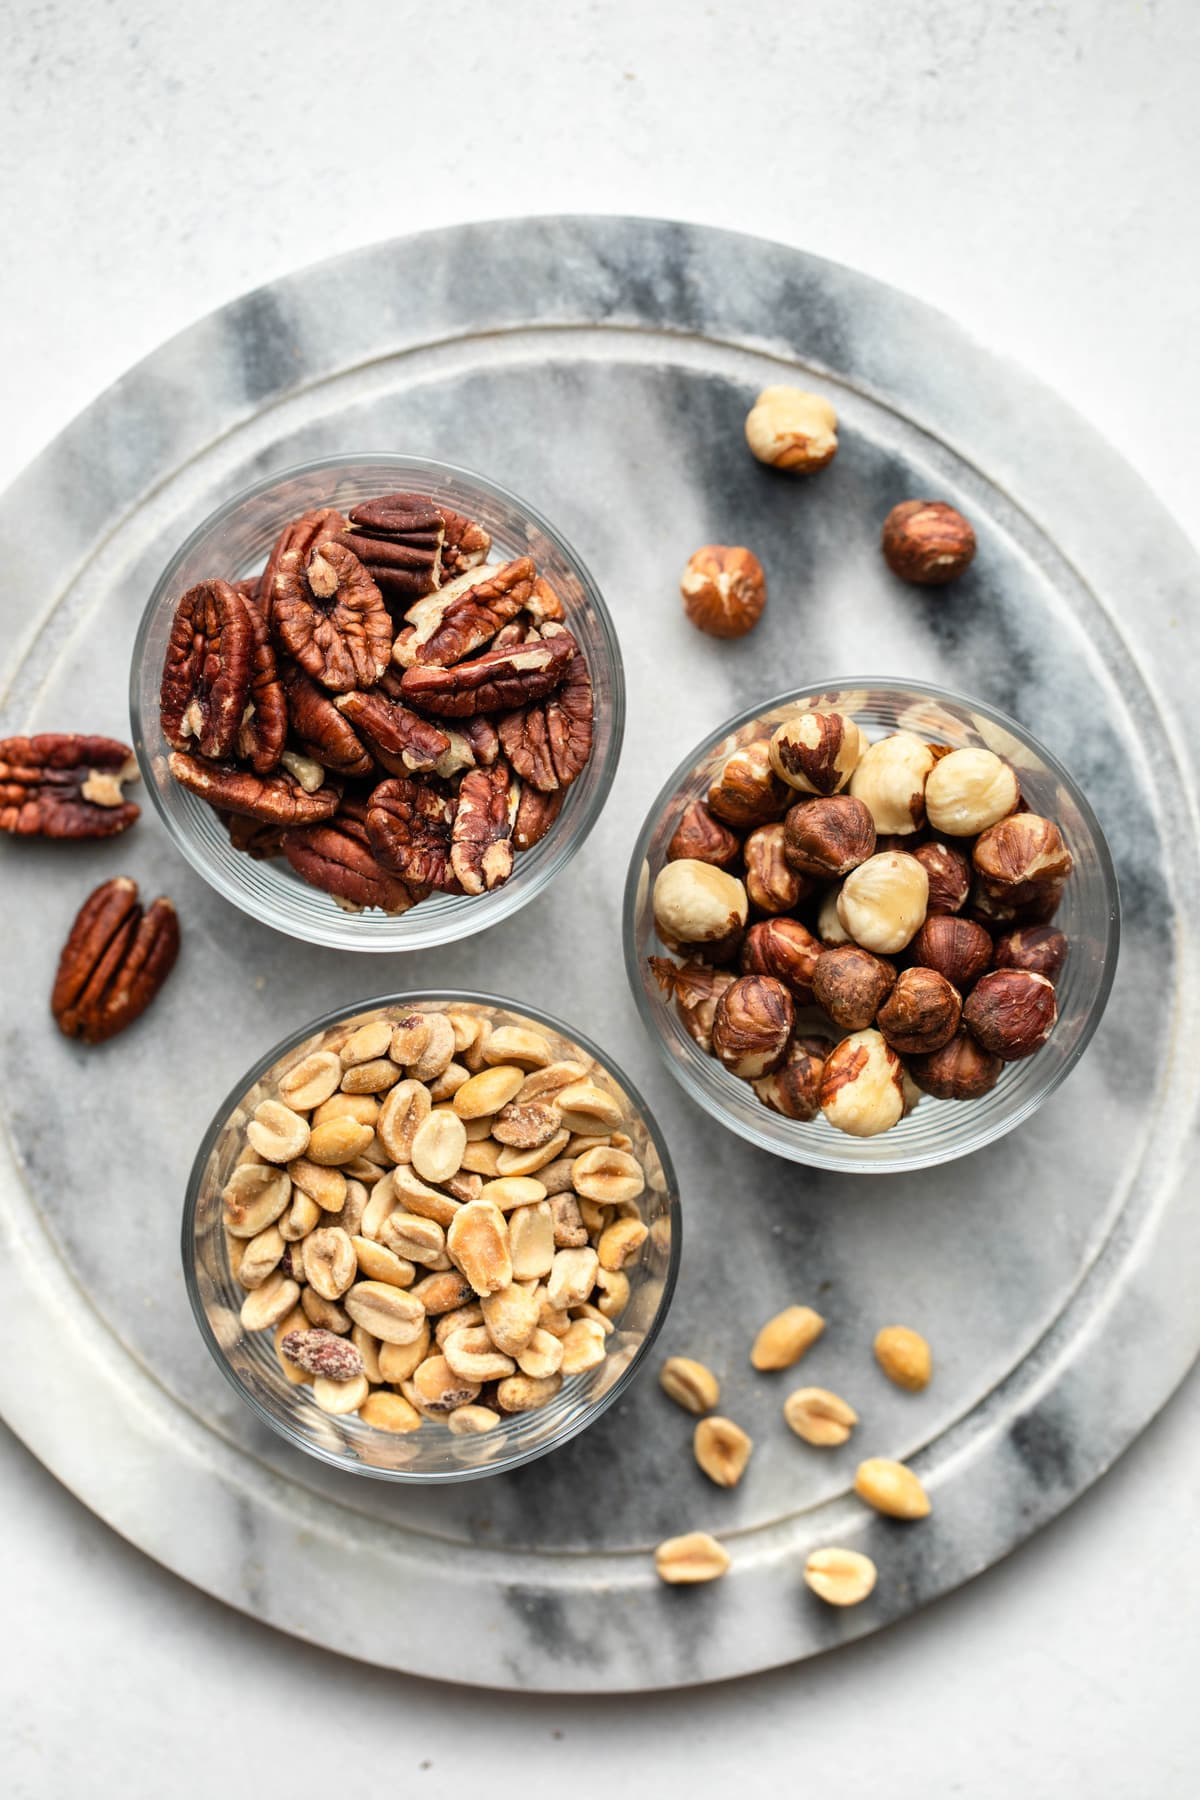 glass bowls of pecans, hazelnuts, and peanuts